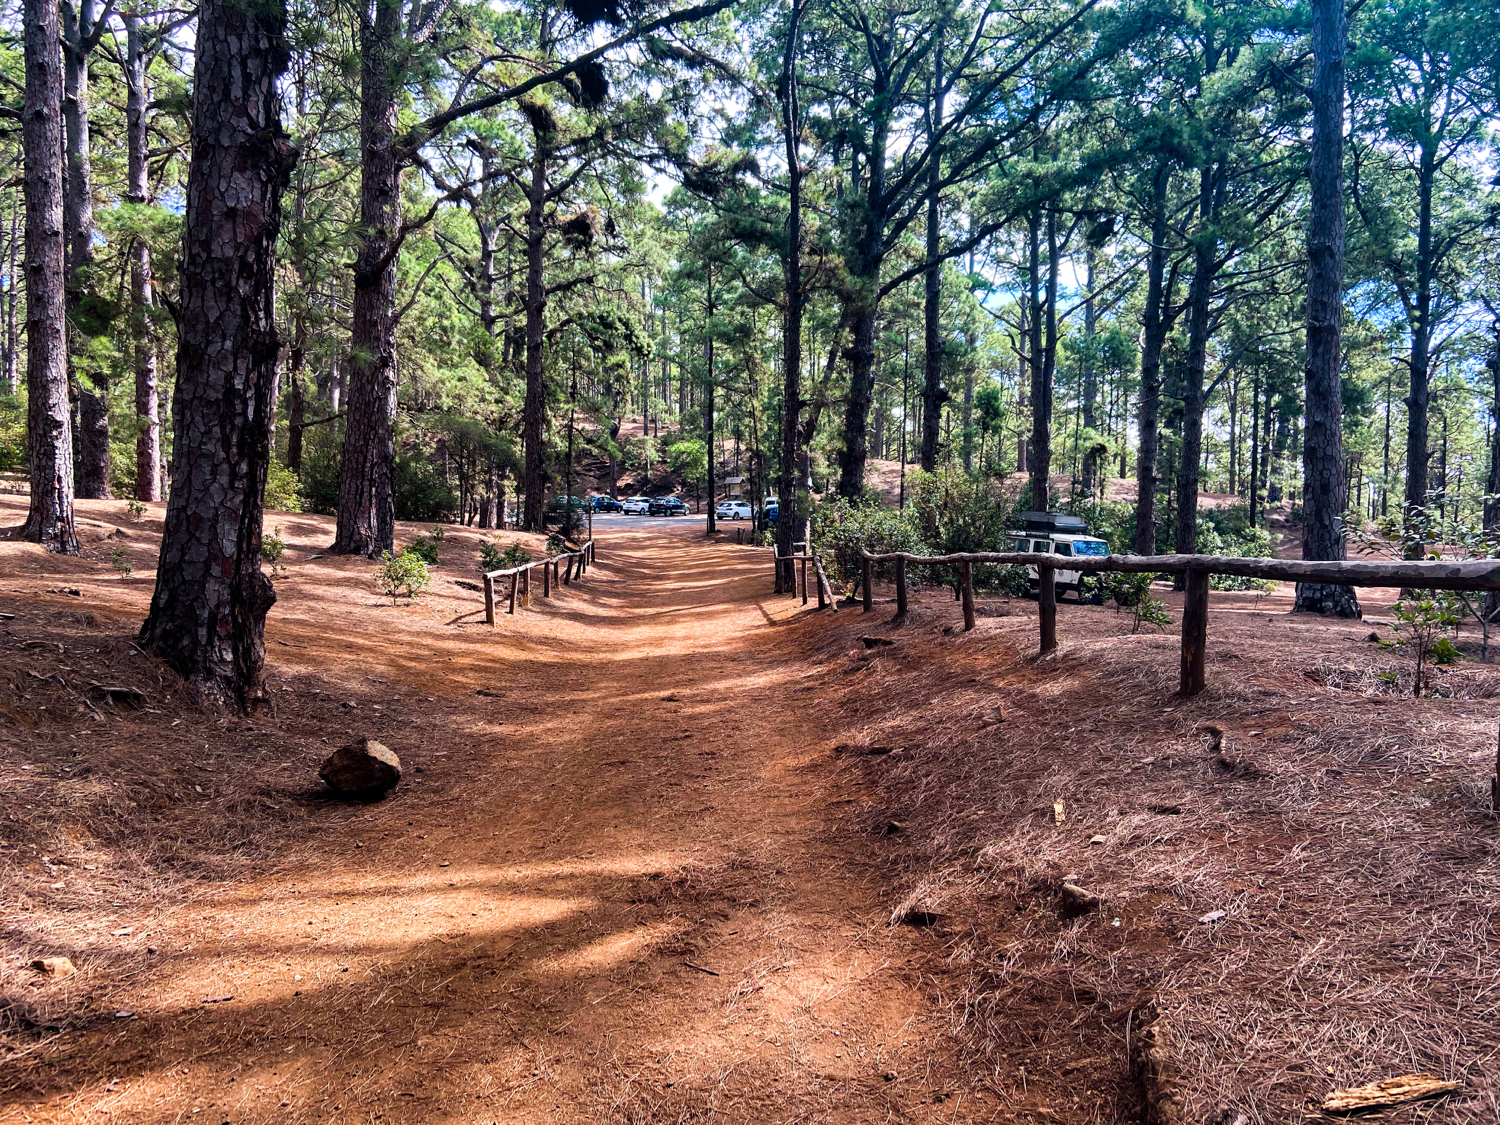 Hiking trail to the Las Raíces rest area